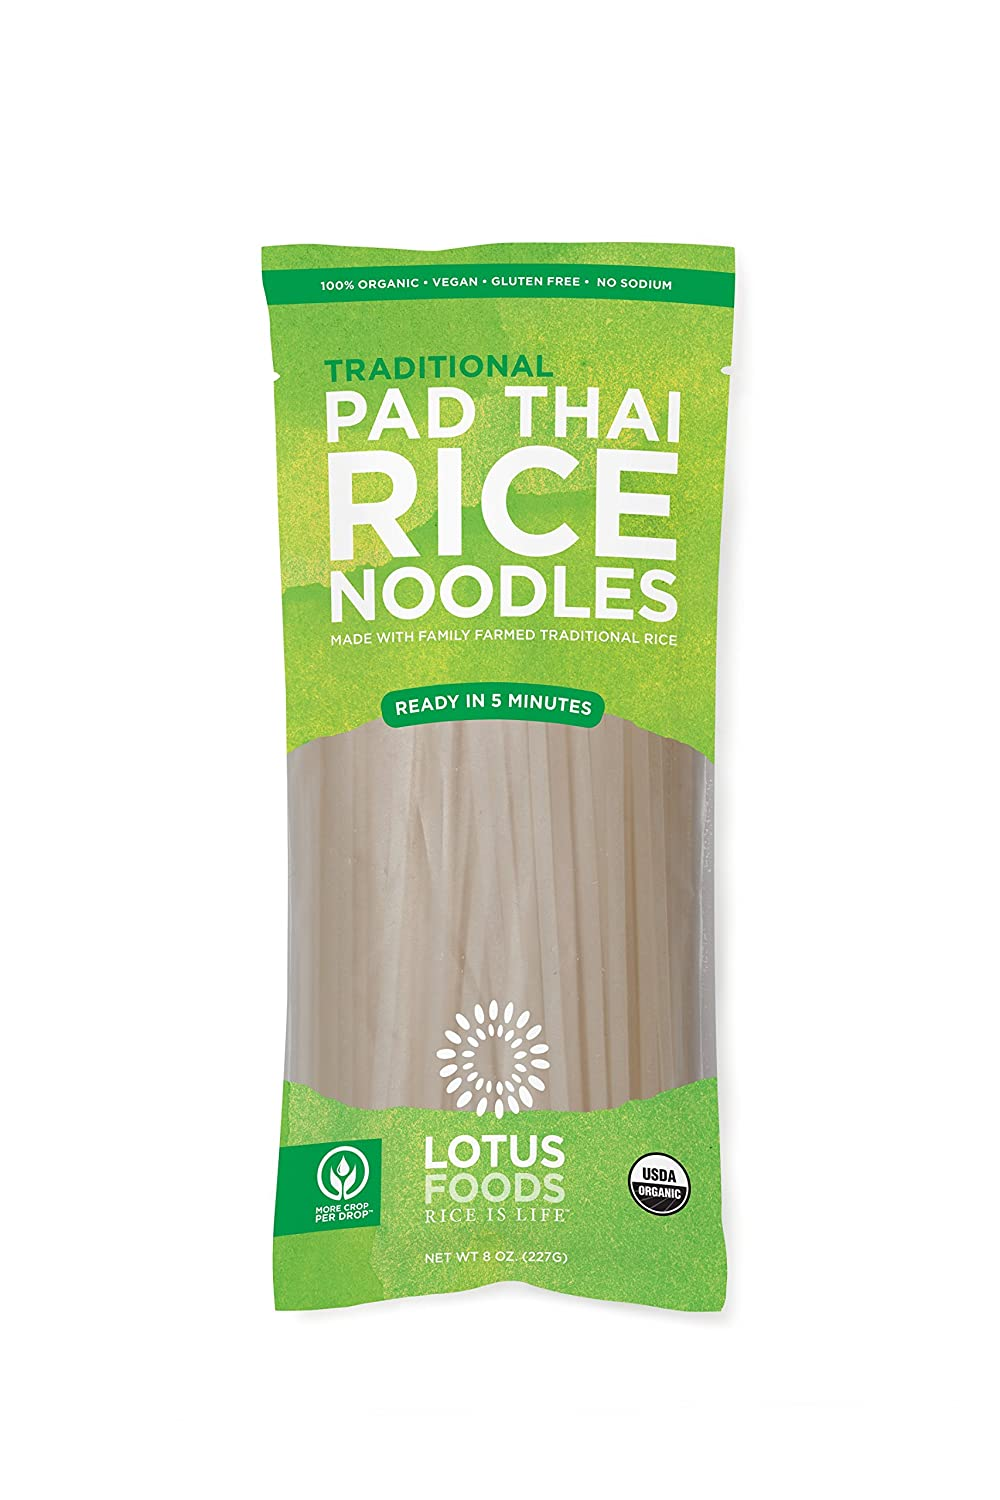 Lotus Foods Gourmet Organic Traditional Pad Thai Noodles, 8 Count